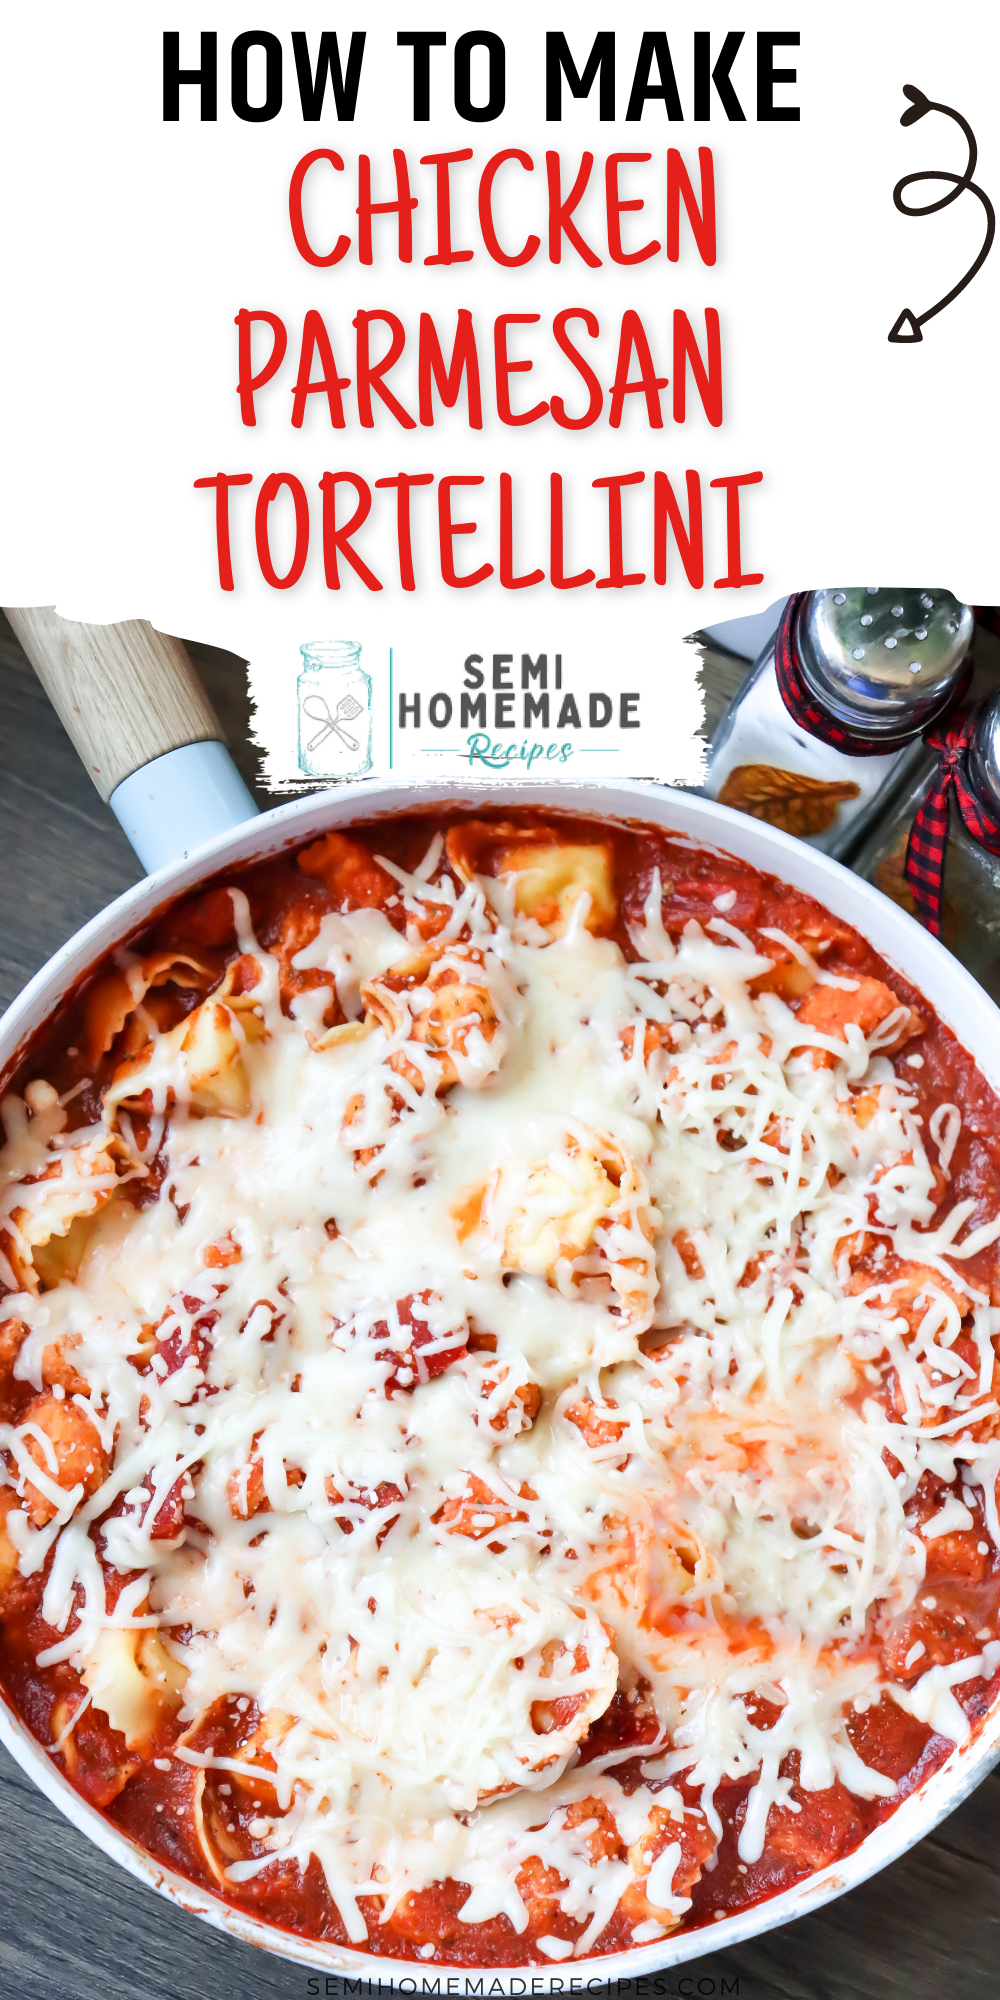 Semi Homemade Chicken Parmesan Tortellini is a super easy meal that's ready in about 30-45 minutes! Breaded Chicken nuggets, pasta sauce and cheese tortellini is absolutely delicious! This can also be made with cheesy tortelloni!